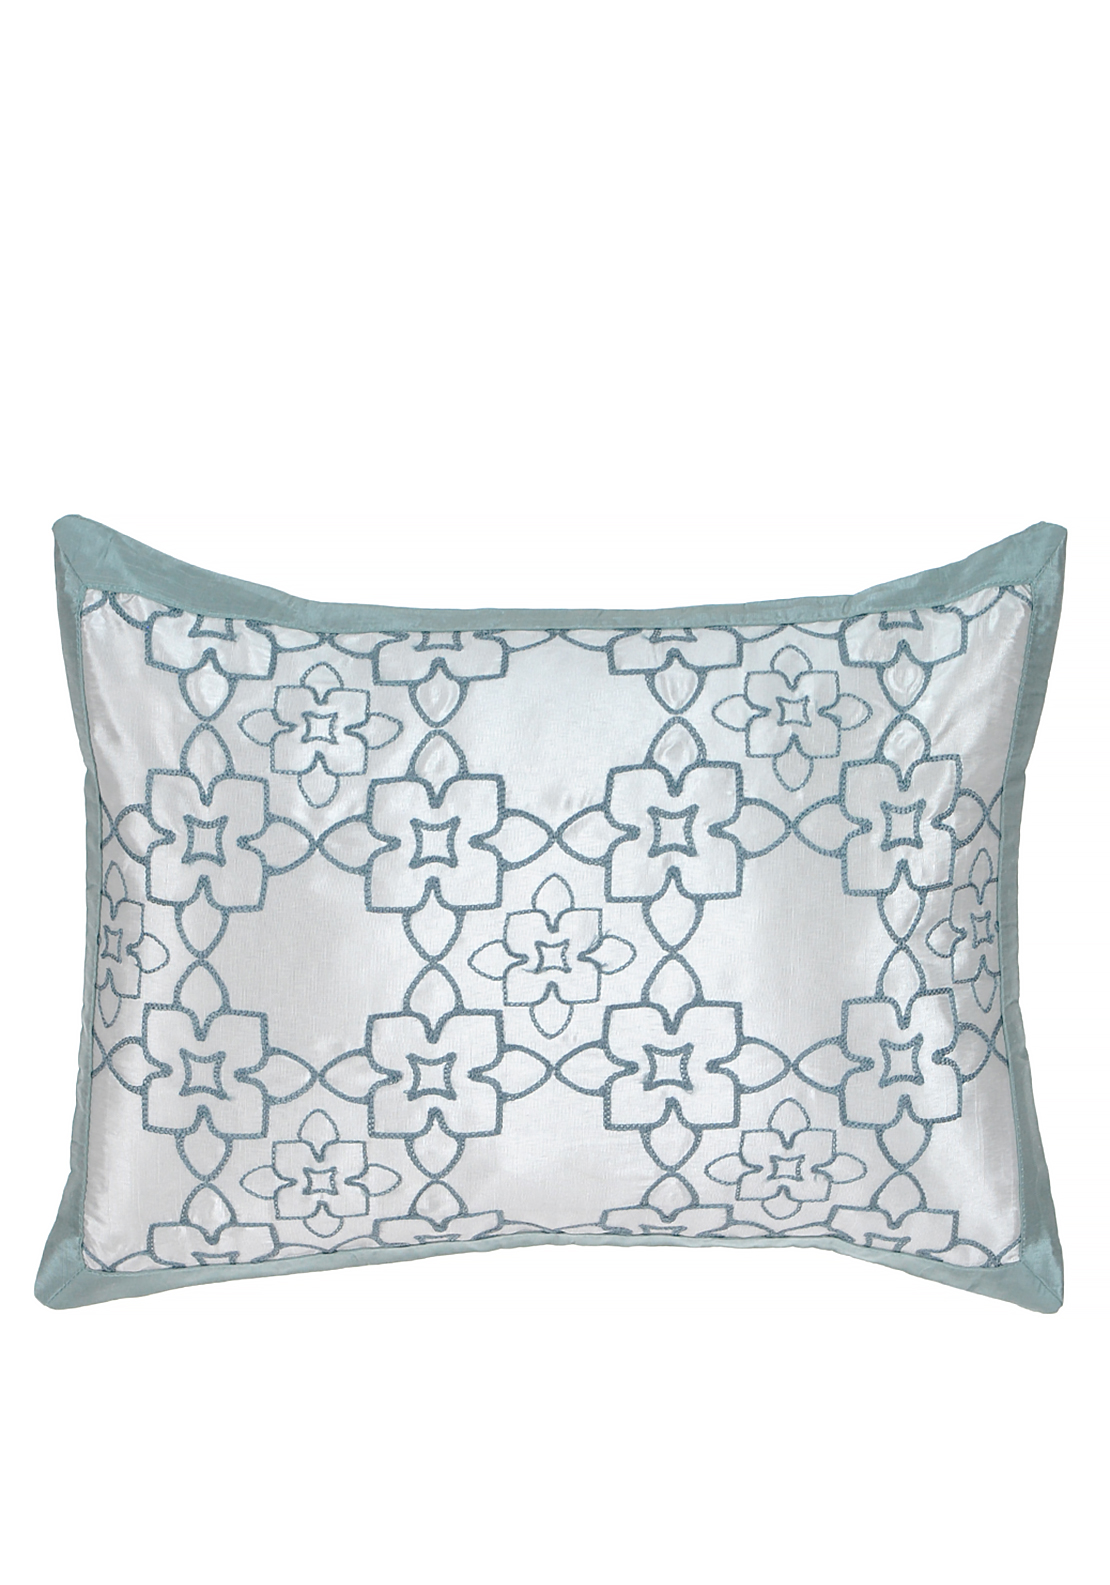 V&A Quatrefoil Oxford Cushion 30X40CM, Light Aqua Blue